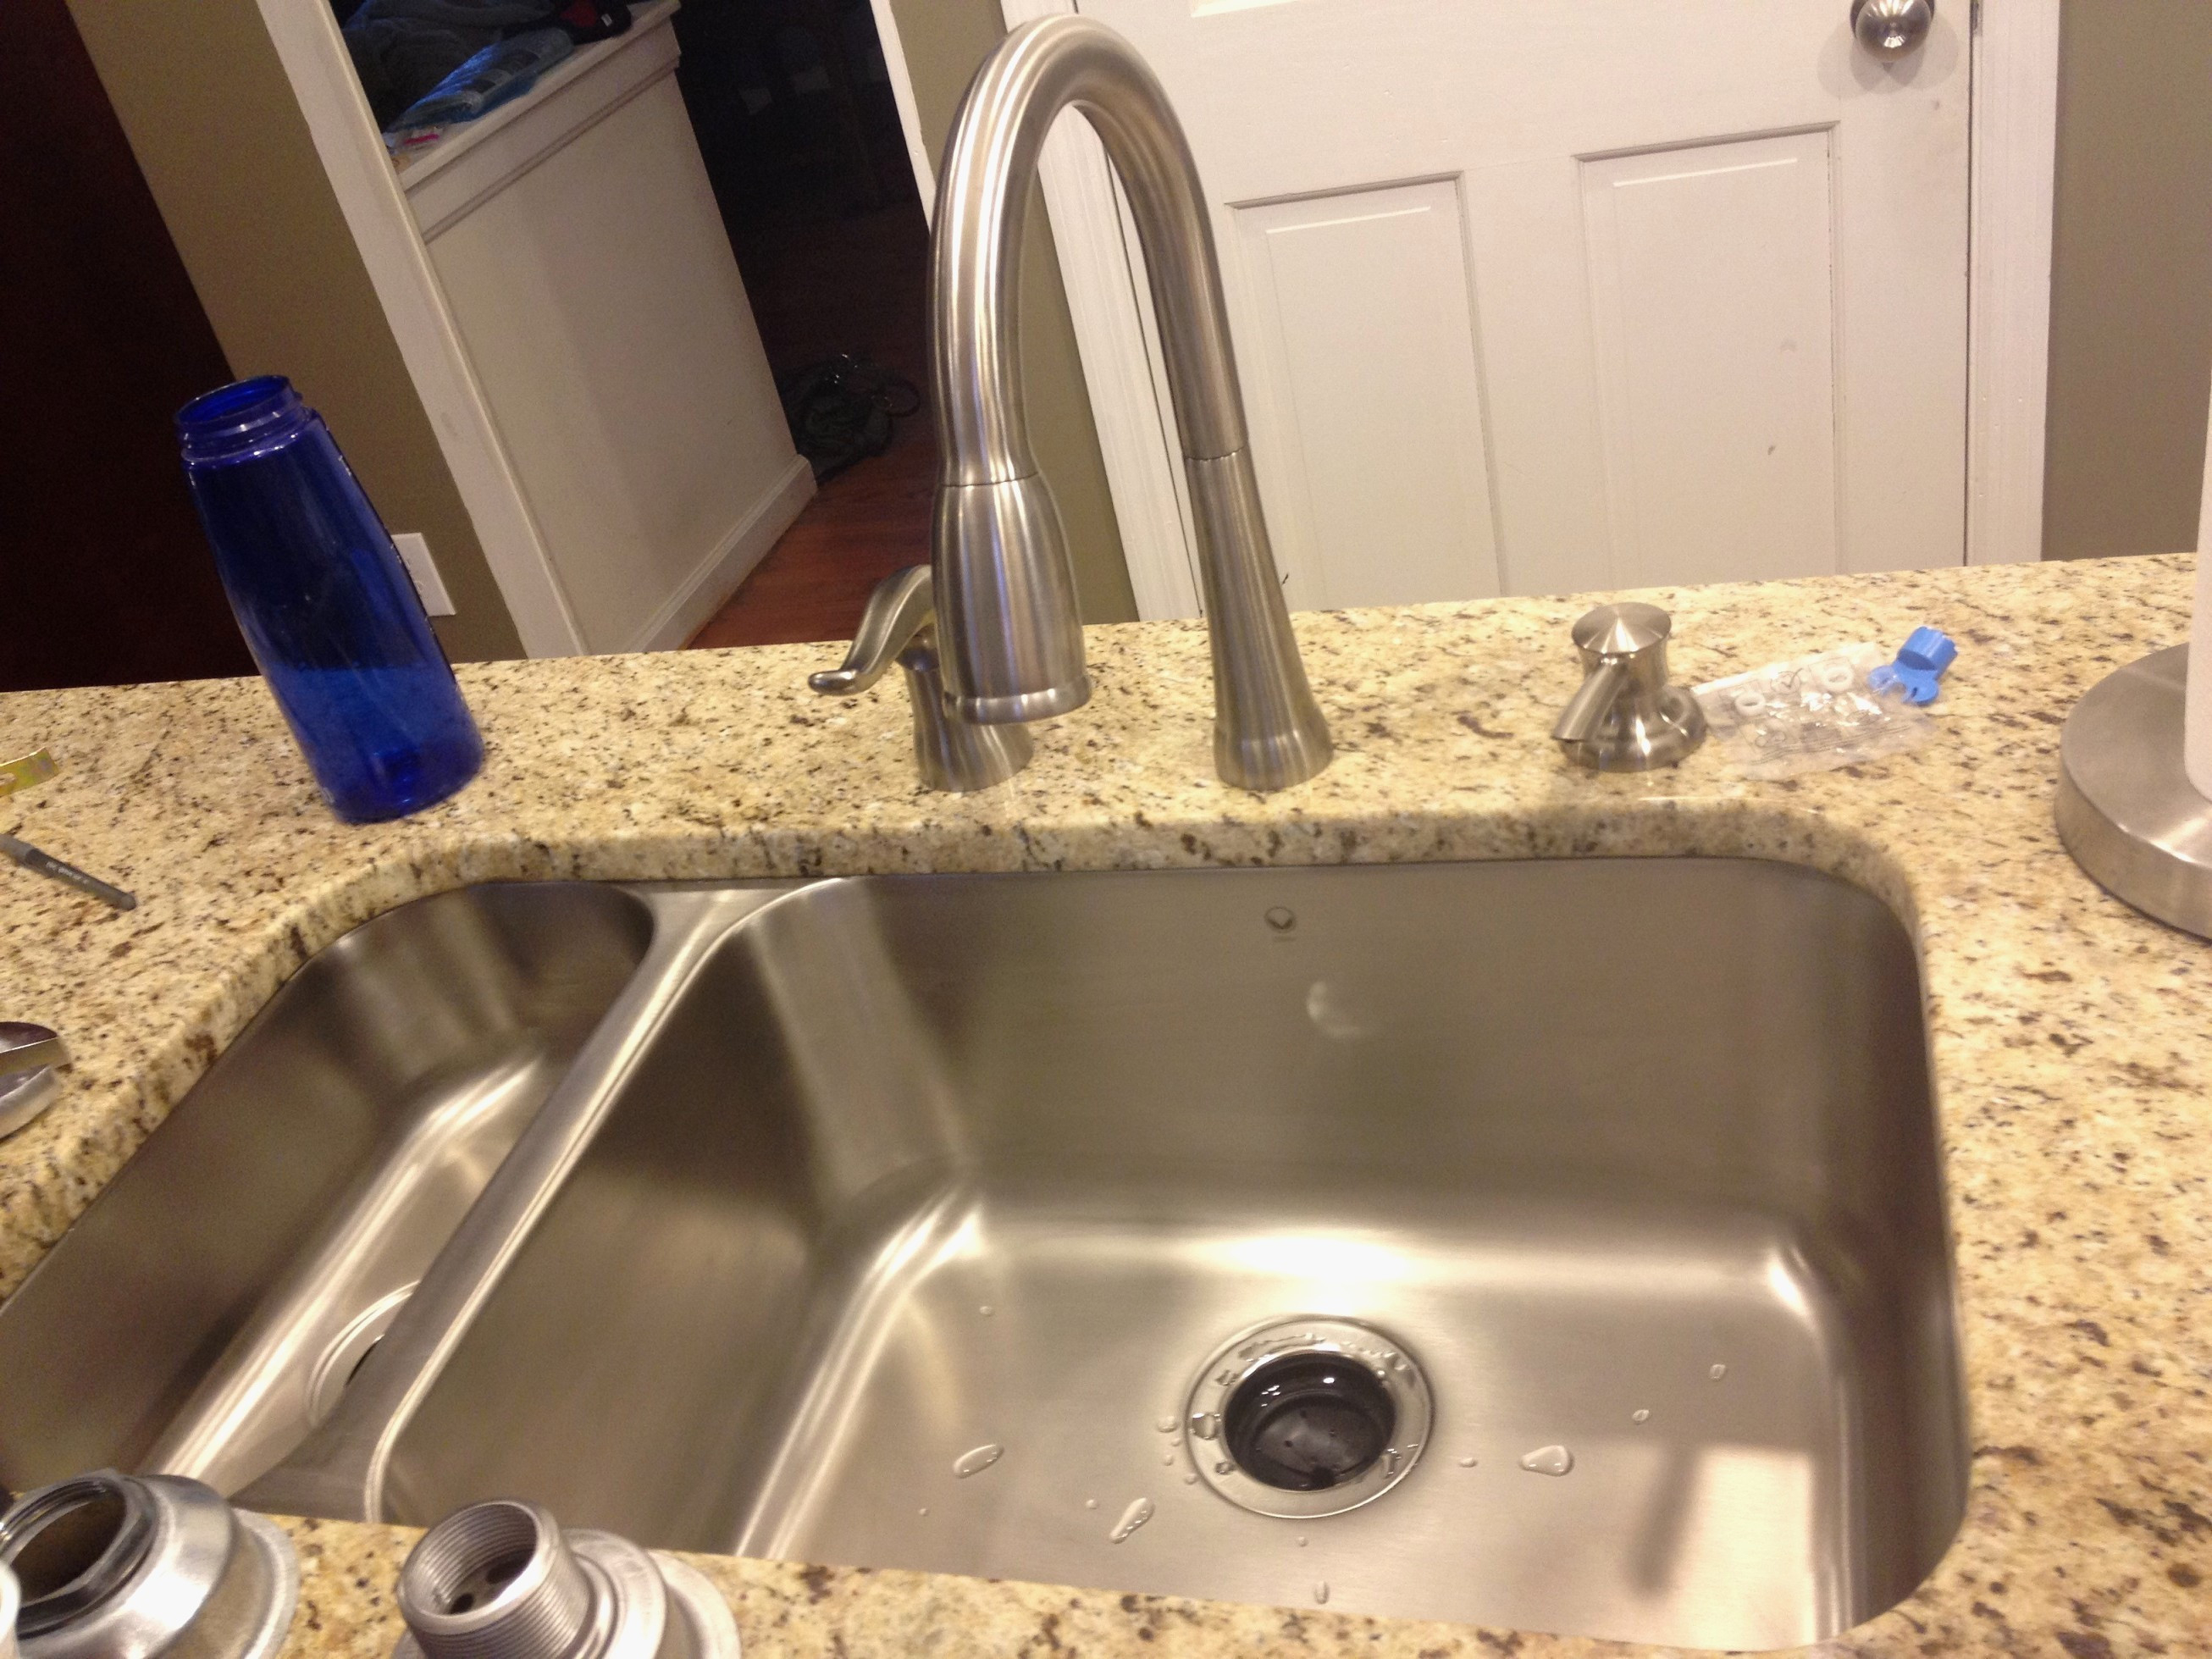 Glamorous Clogged Double Kitchen Sink Garbage Disposal Fresh 51 New Kitchen regarding How To Unclog A Double Kitchen Sink